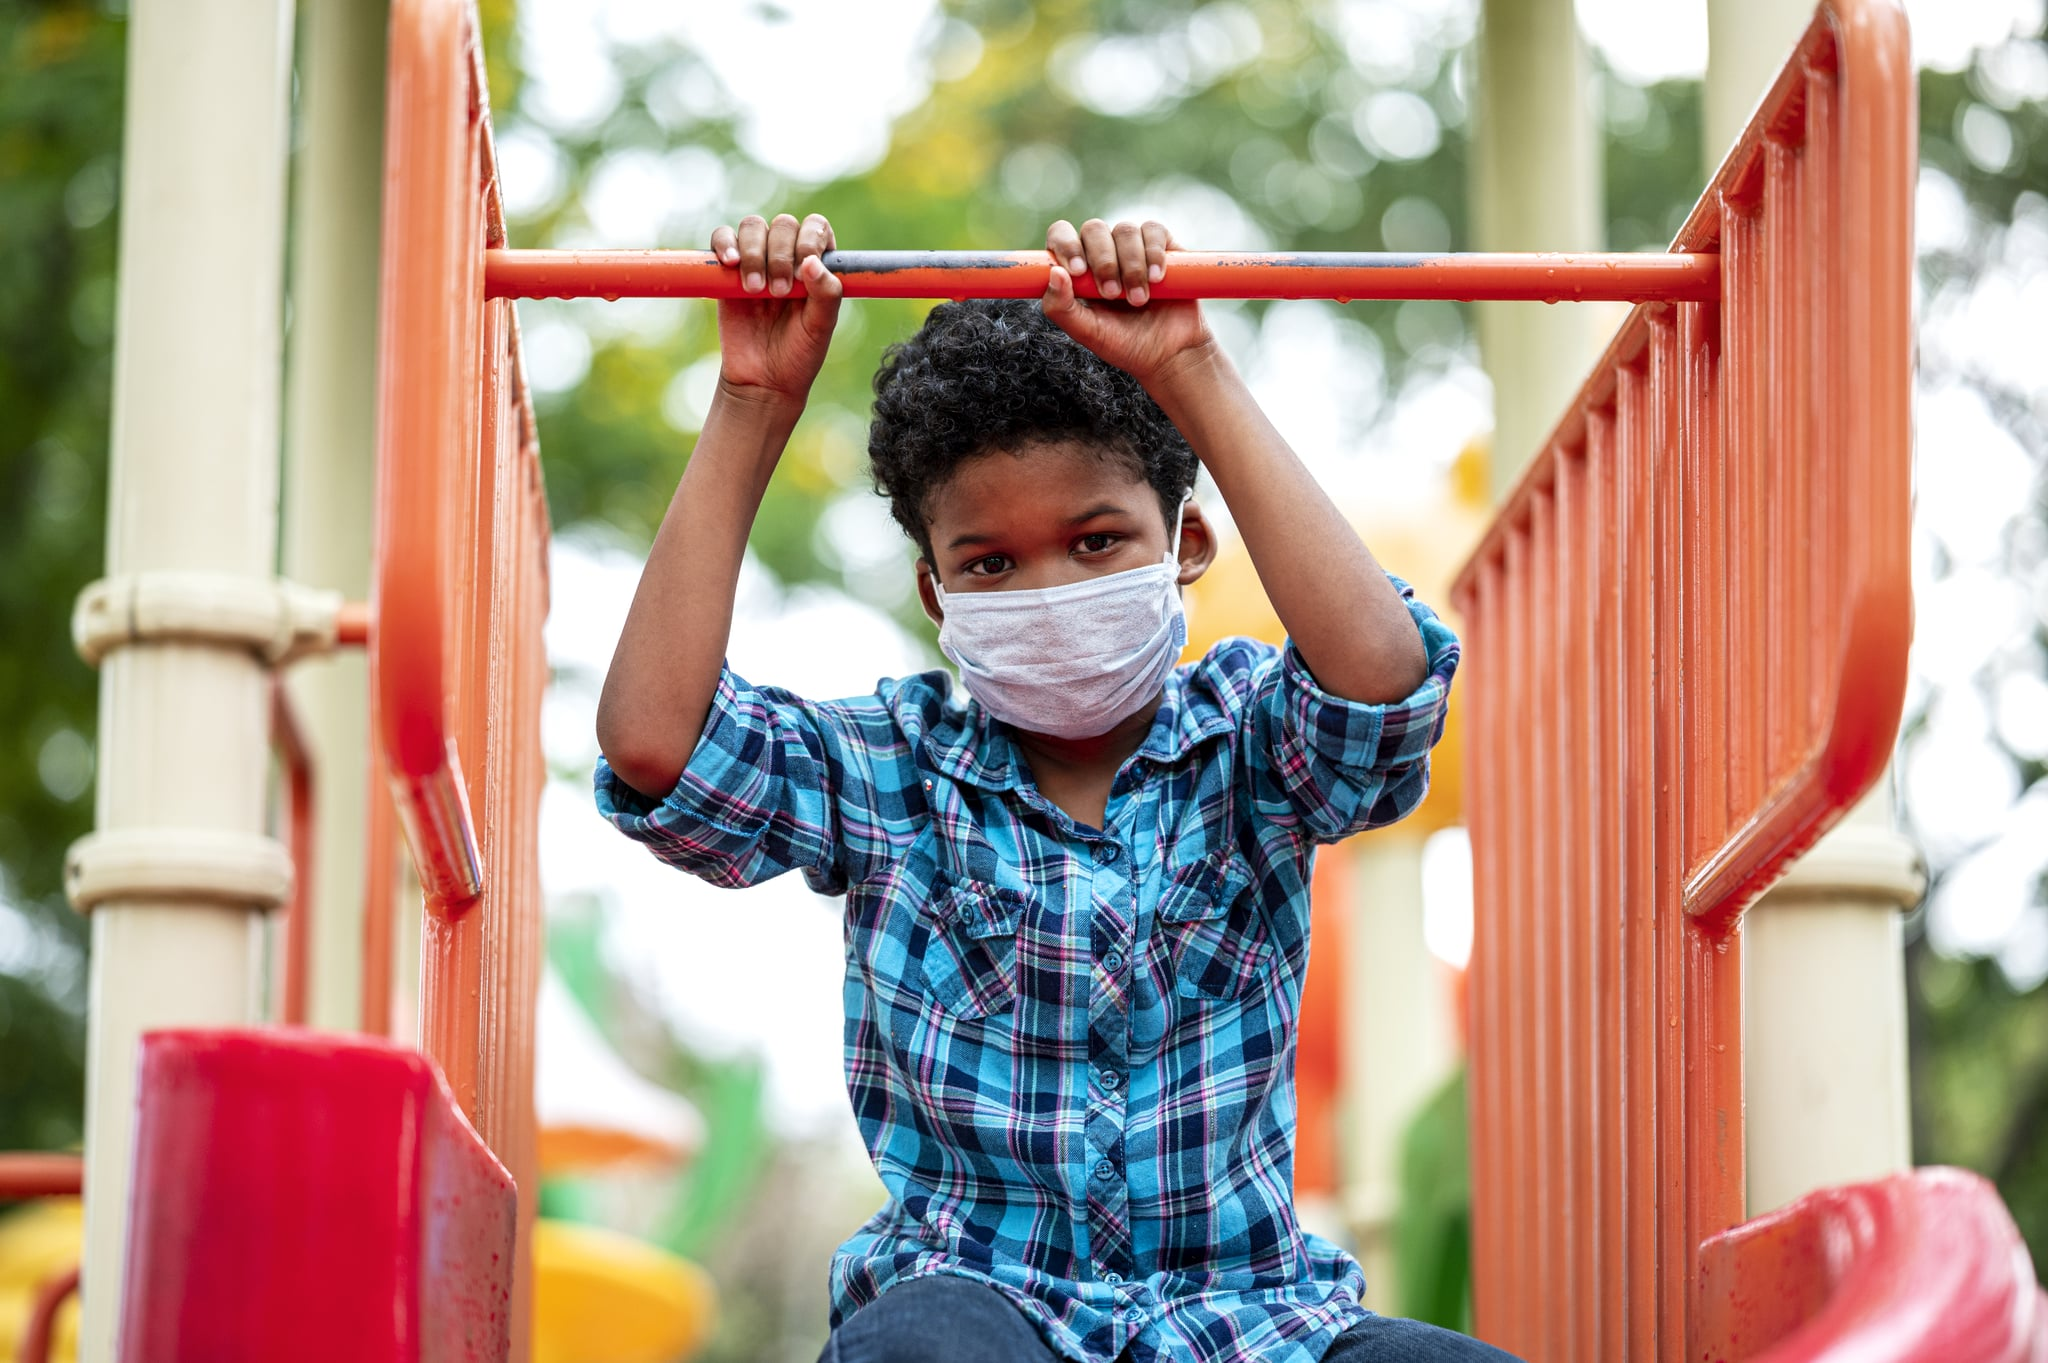 Lonely boy wearing protective face mask while playing at playground.